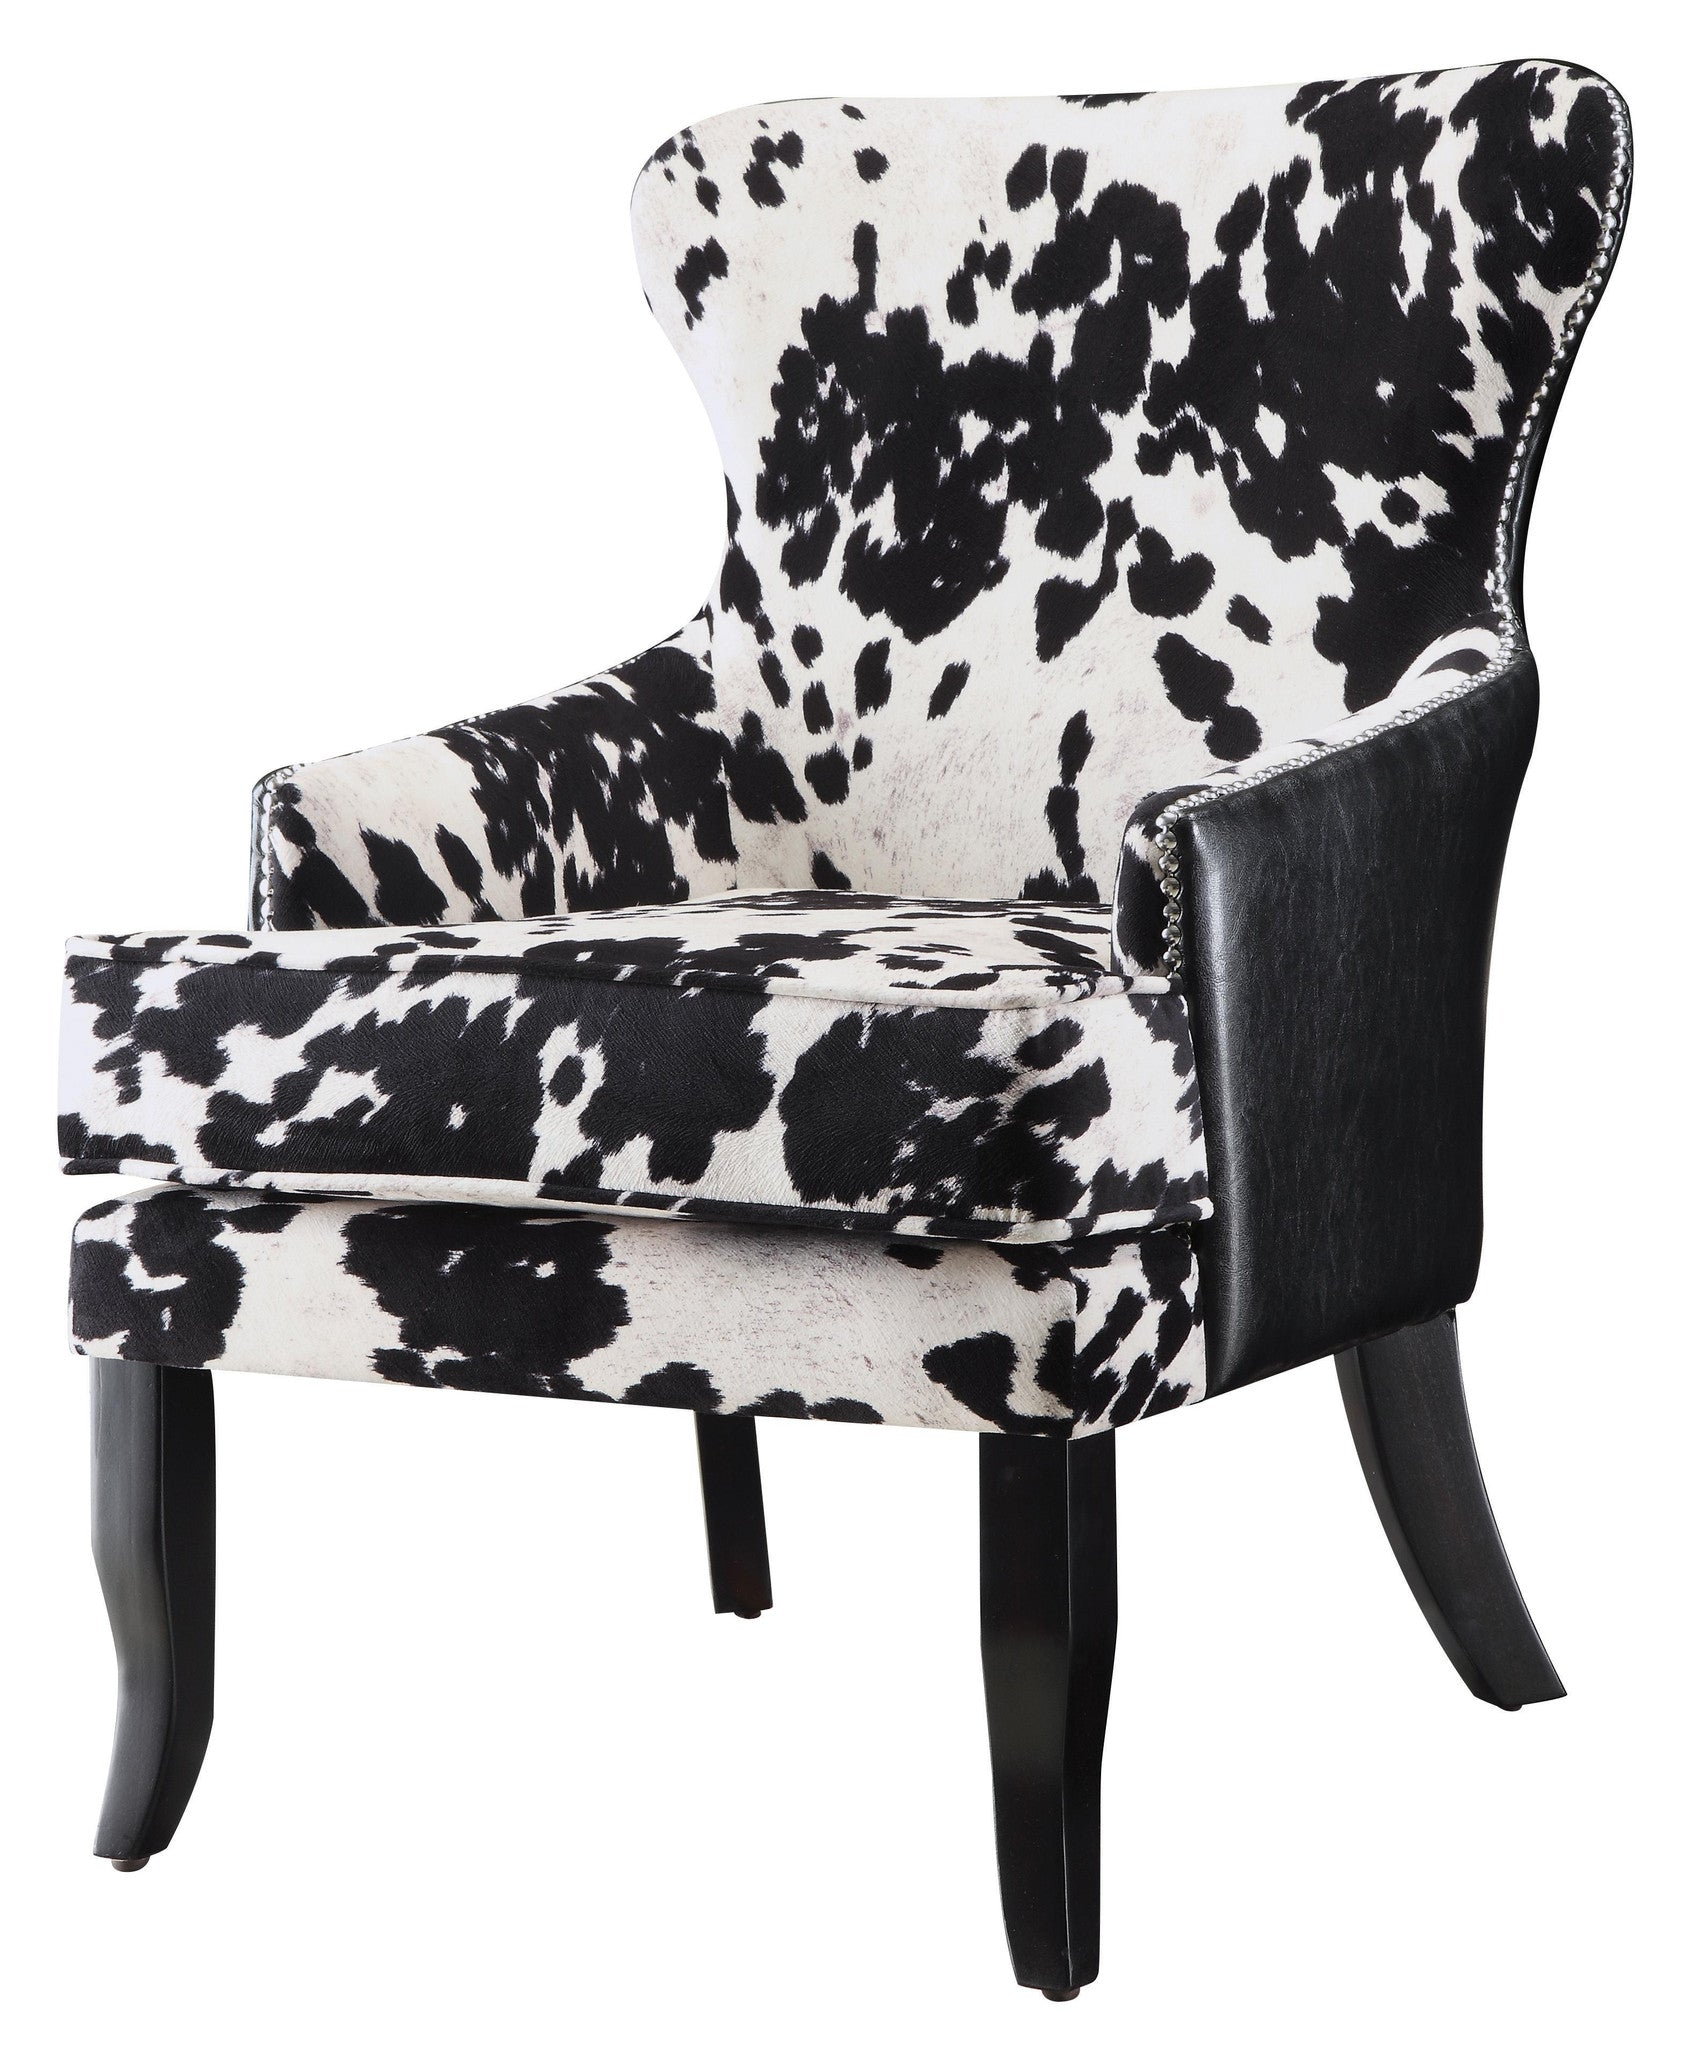 Mooey Chair cow print chair modern chair black and white chair